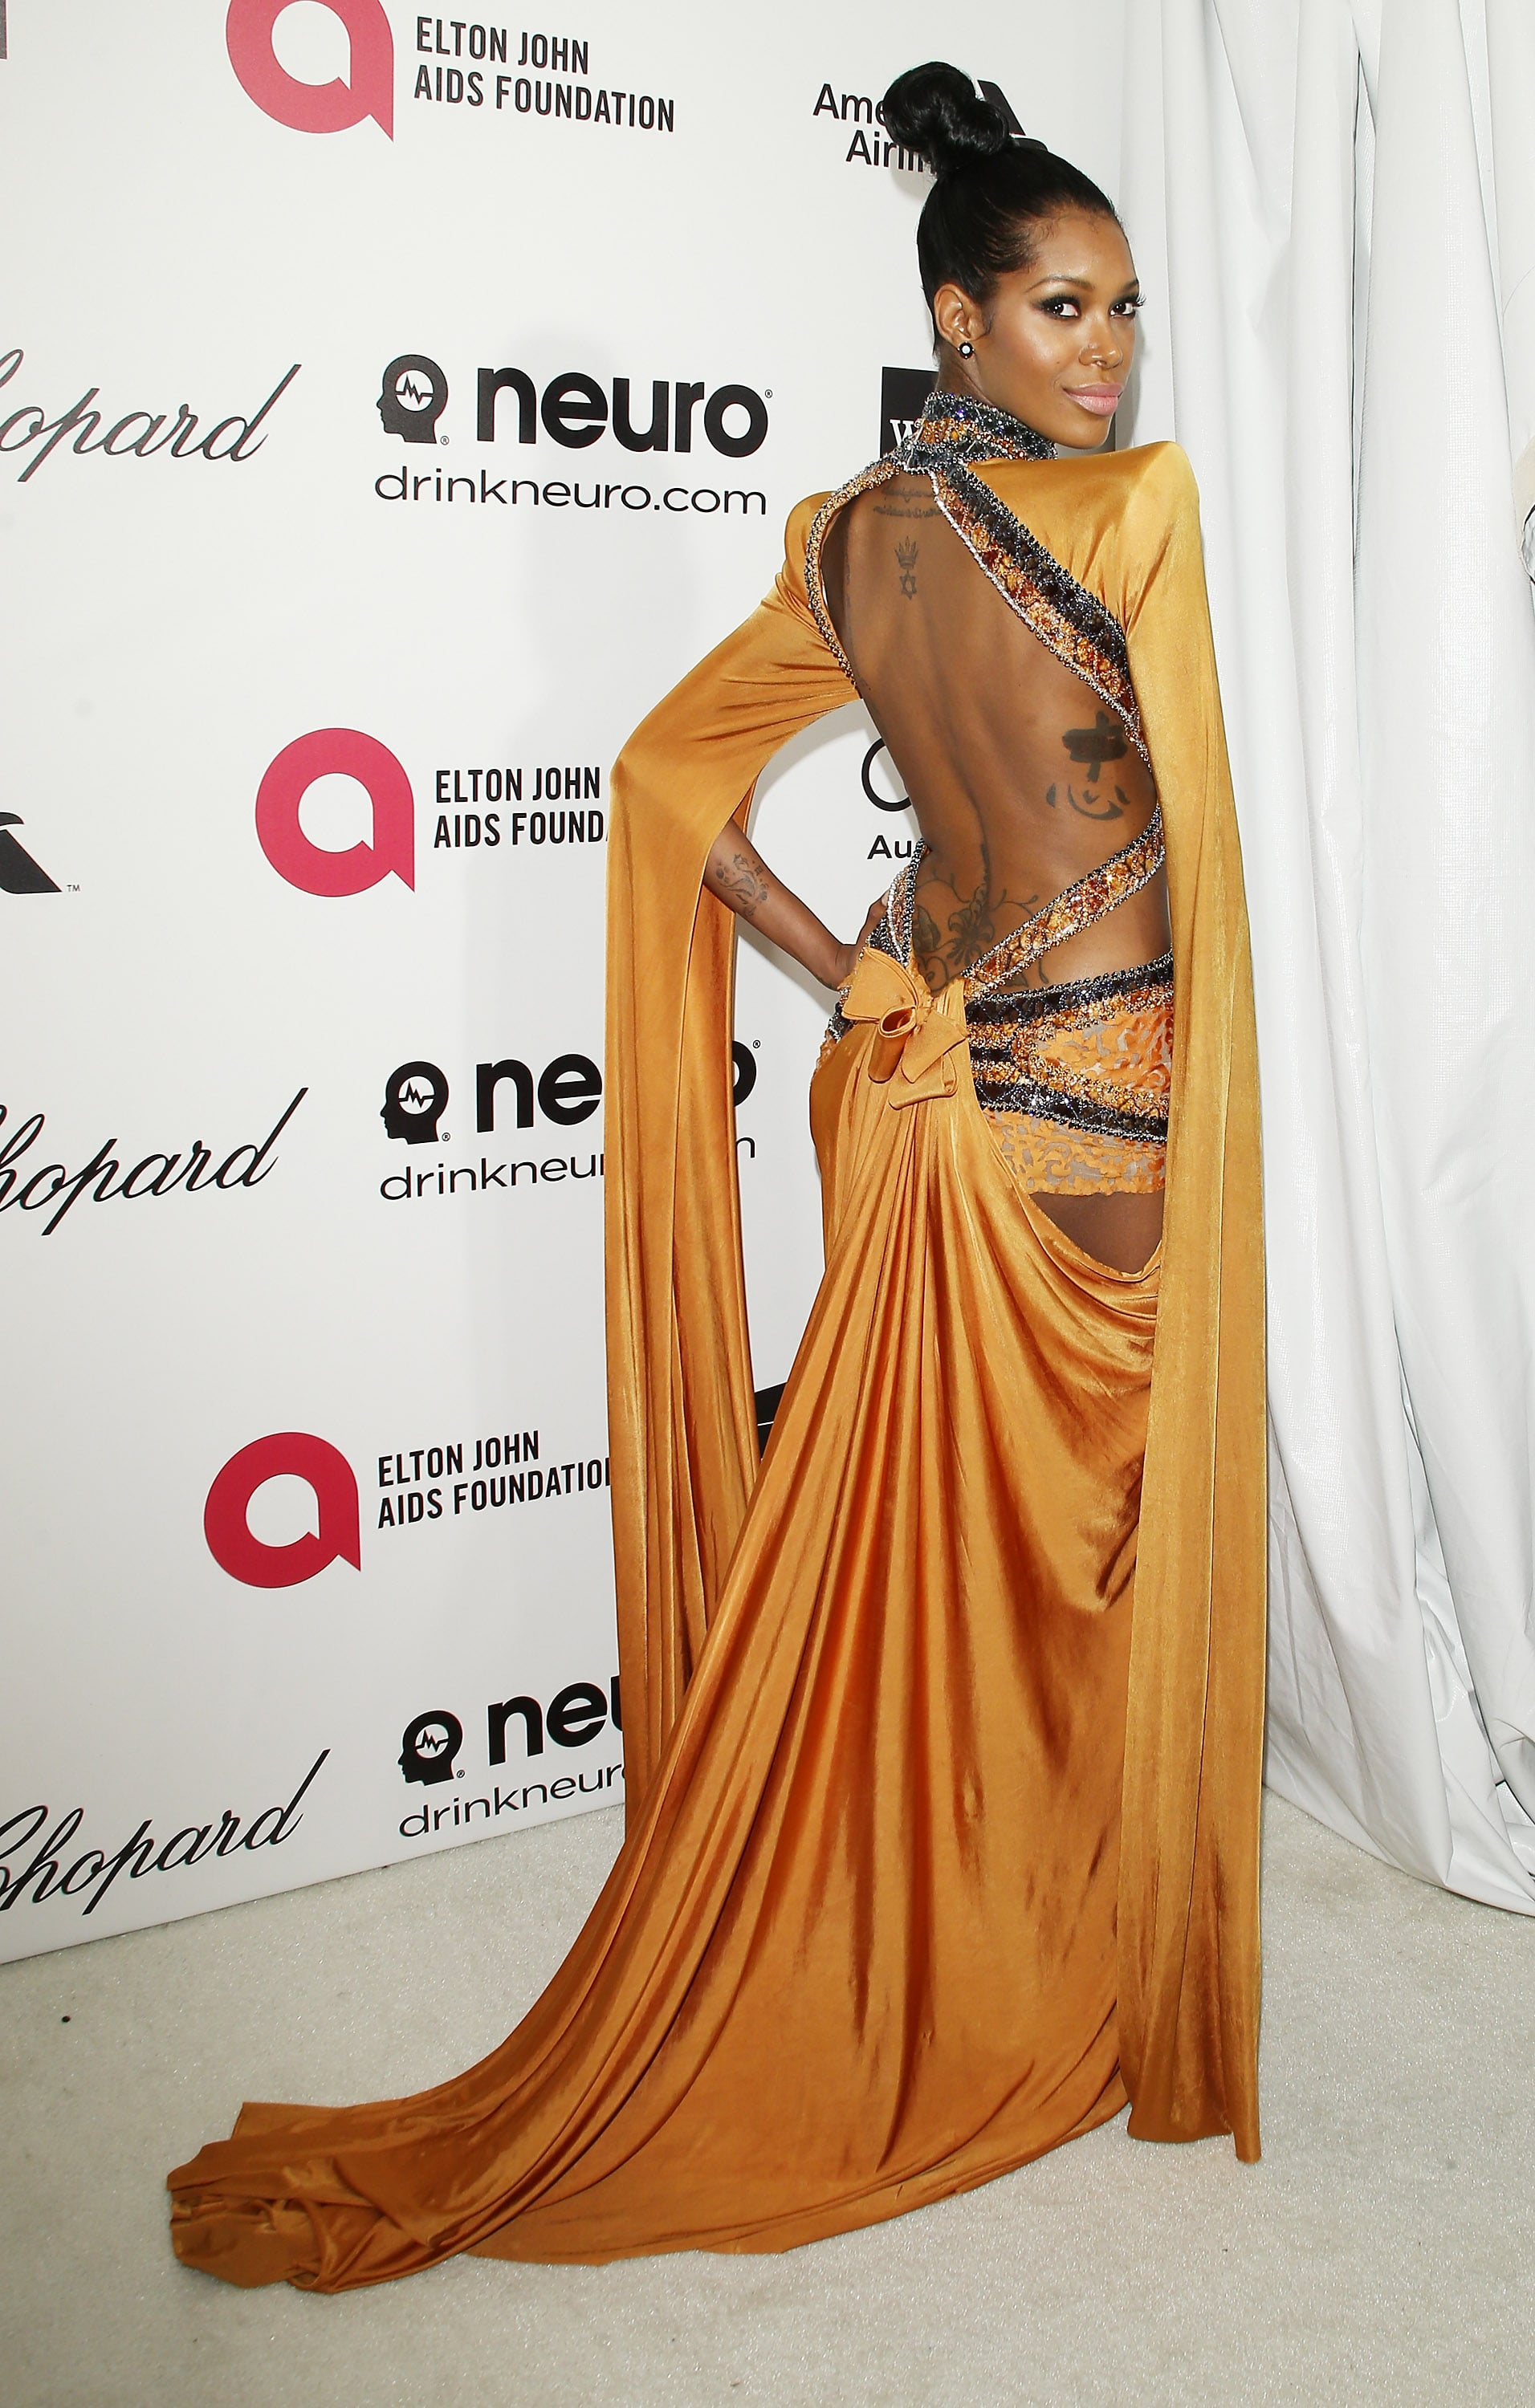 Jessica White at the 2014 Annual Elton John AIDS Foundation Academy Awards Viewing Party